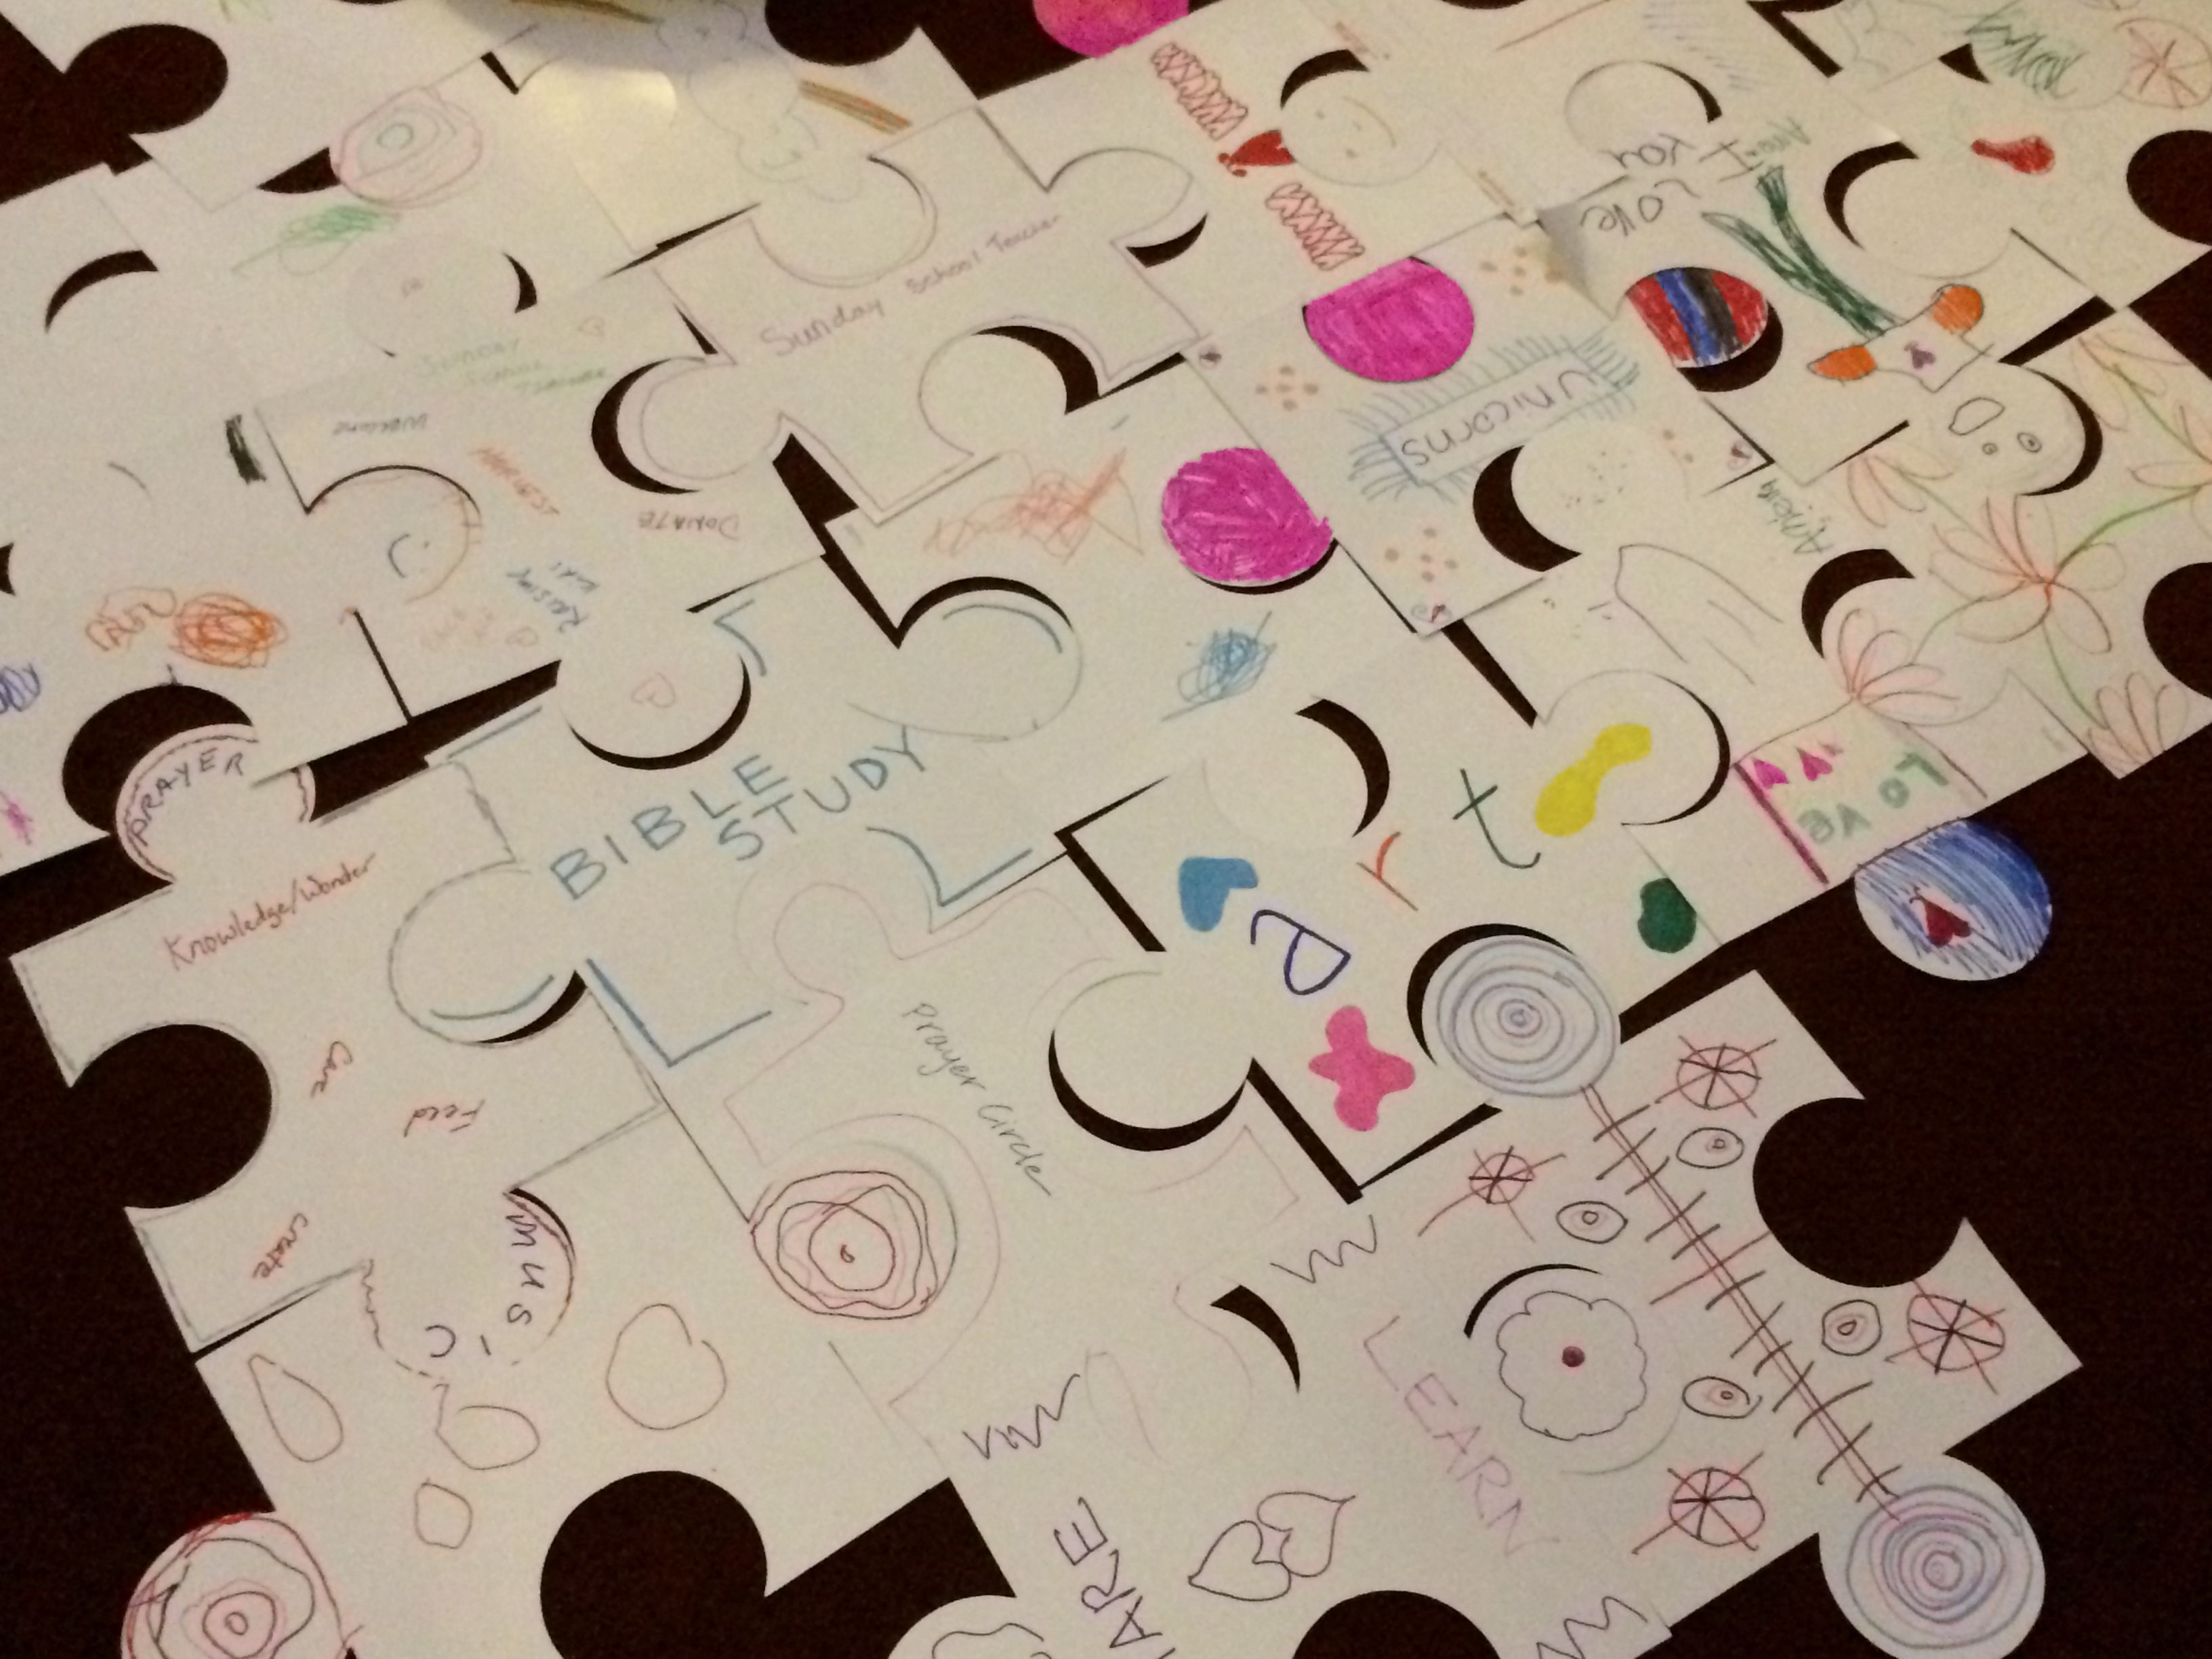 puzzle pieces of people's talents to share with church- maybe use real puzzle pieces during a lesson on spiritual gifts, connect with activities of church